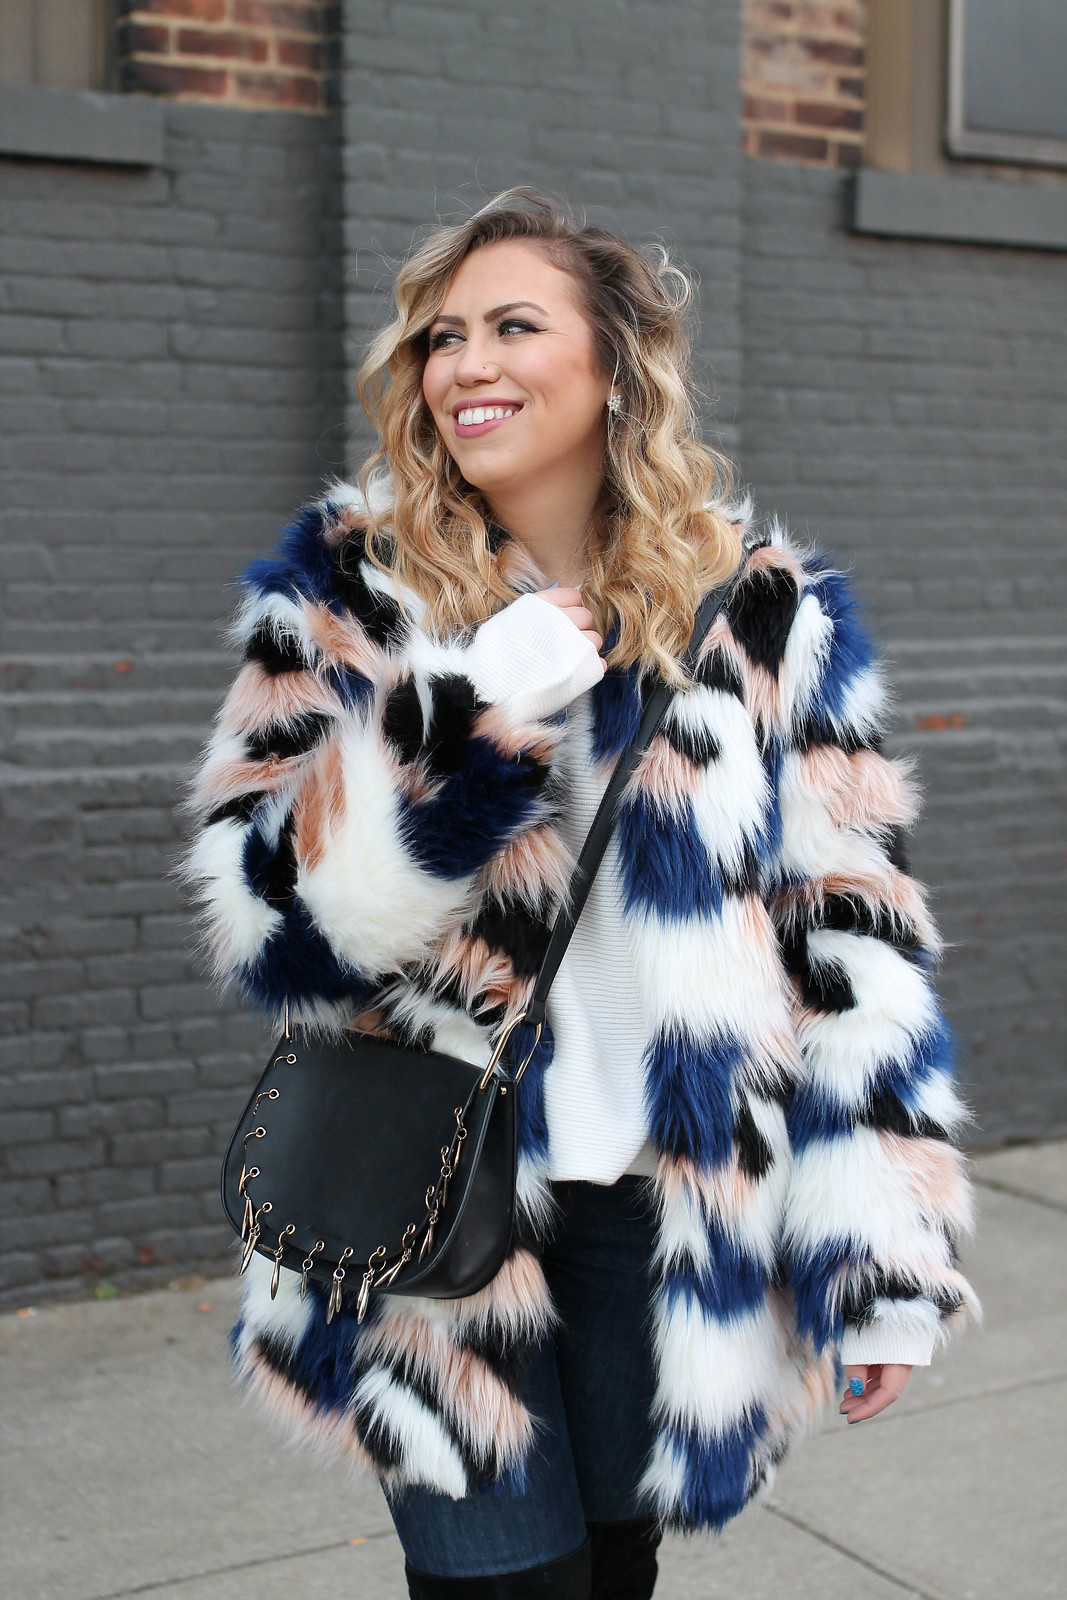 Shein Colorful Faux Fur Coat Blonde Curly Hair Winter Outfit Inspiration Statement Style Fashion